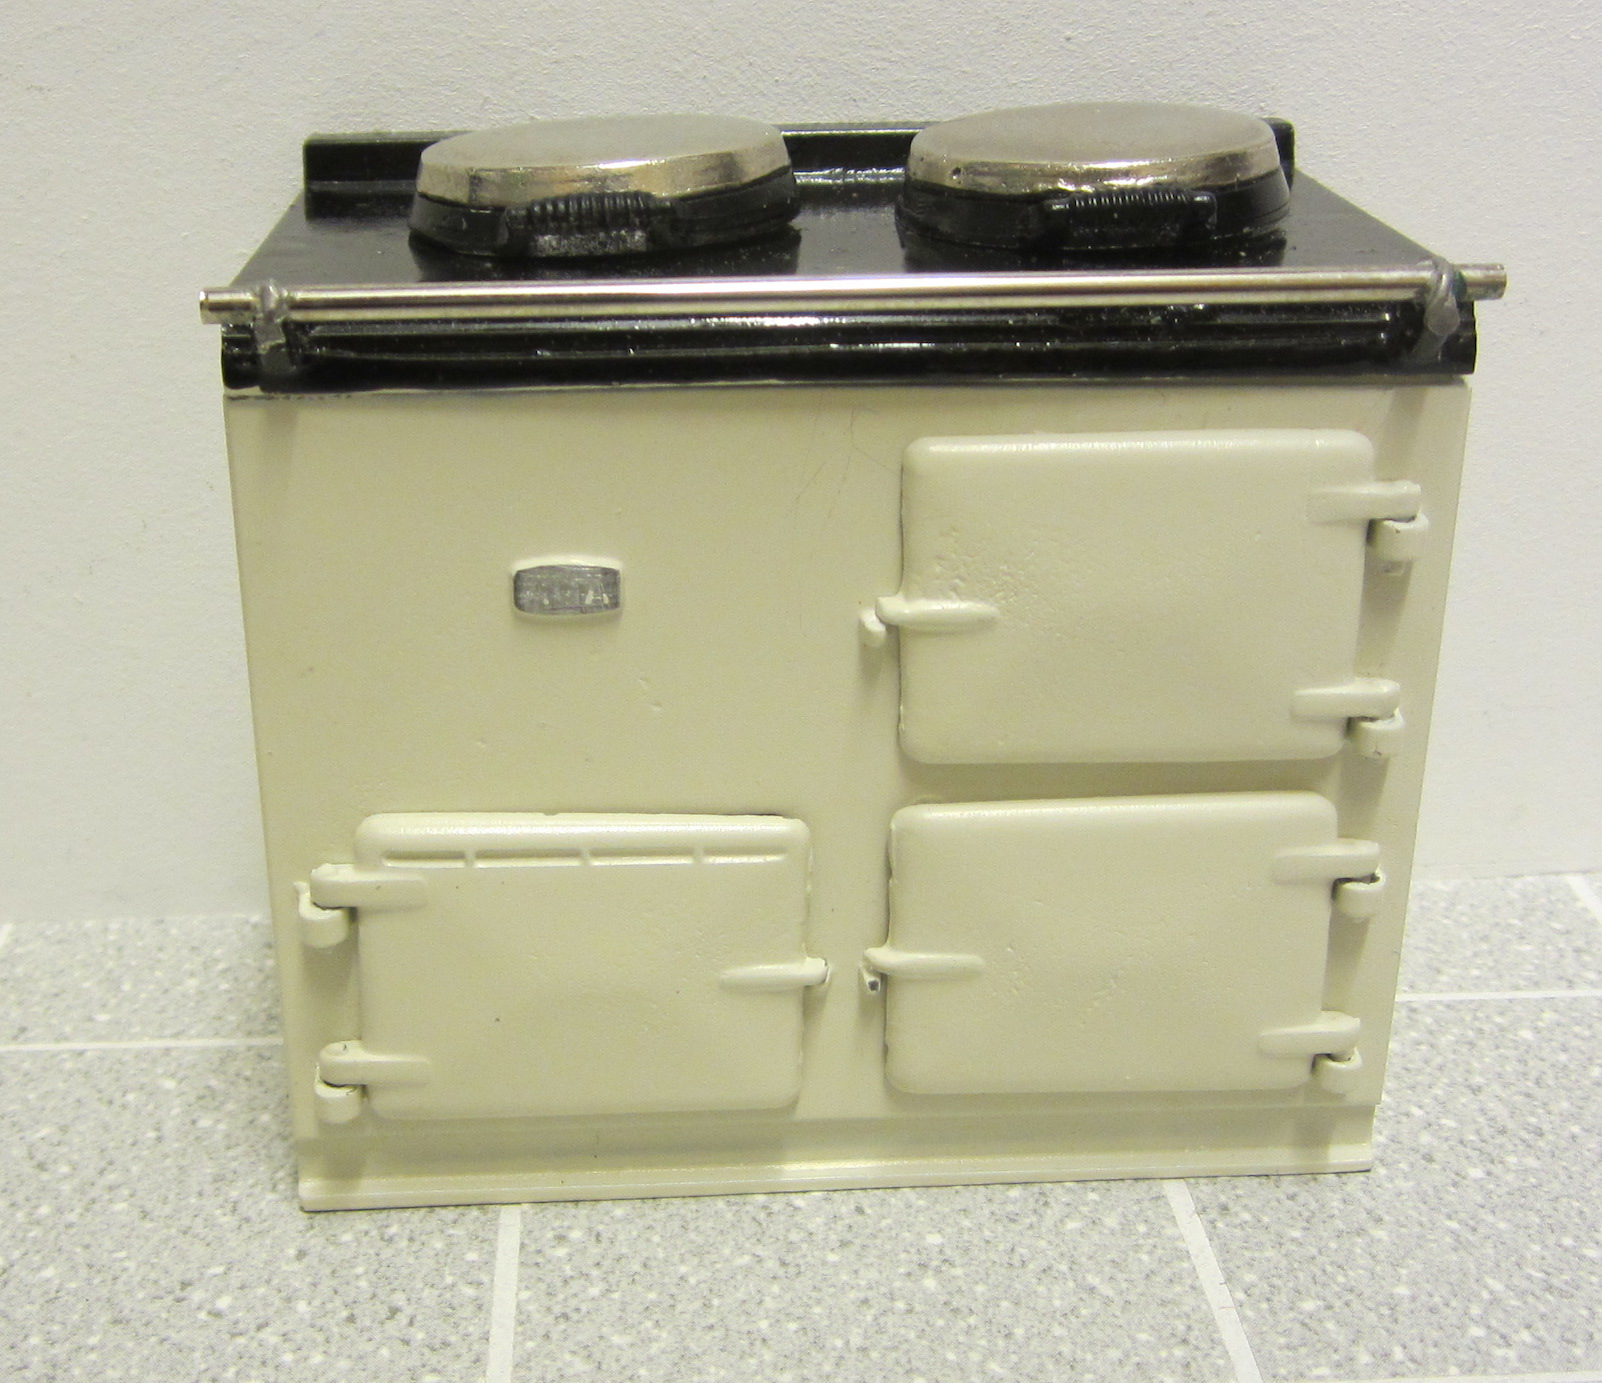 *SALE* Ex-display Cream Aga